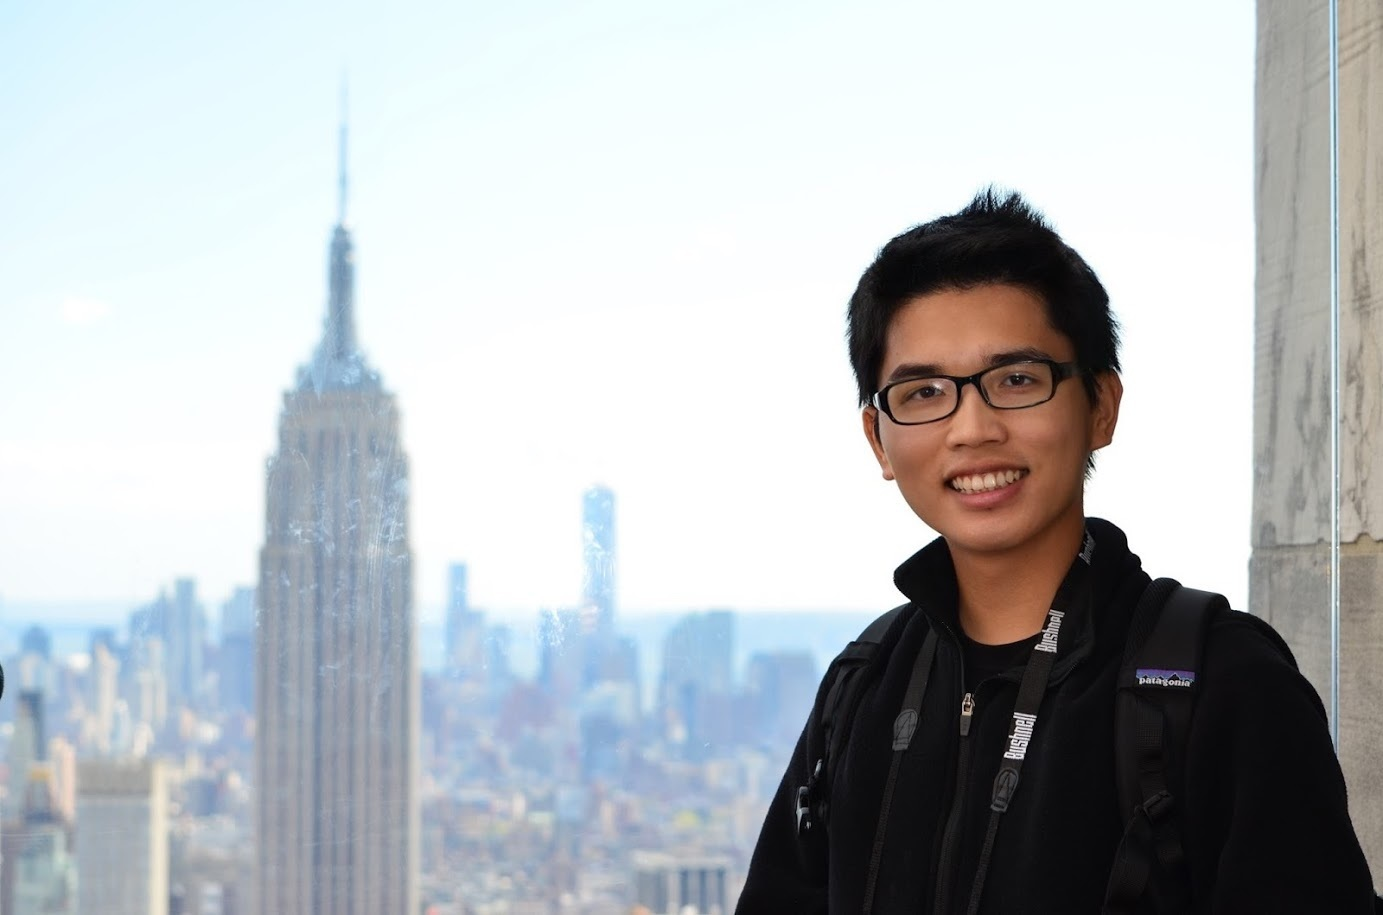 From Olympiad bronze medalist to Google engineer